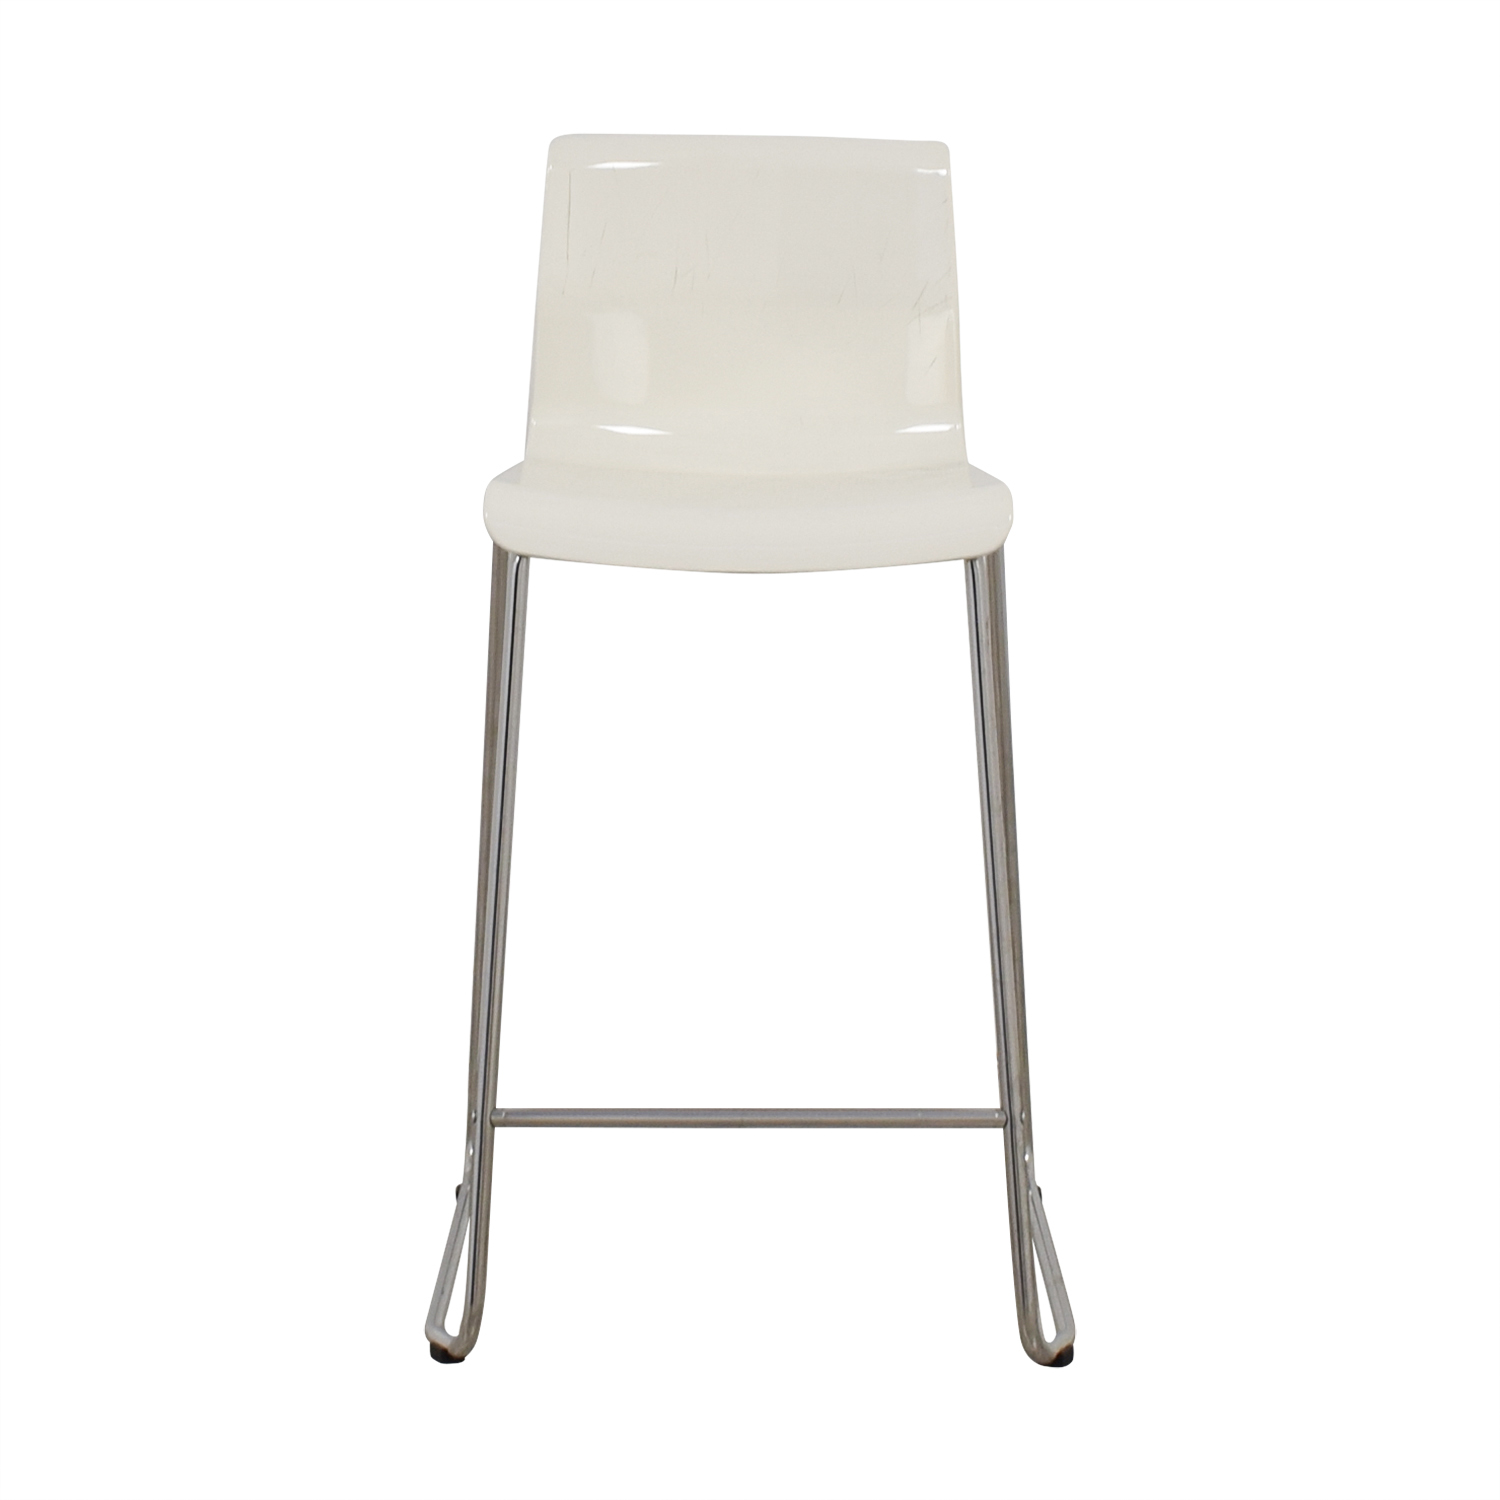 IKEA Glenn White Stool sale